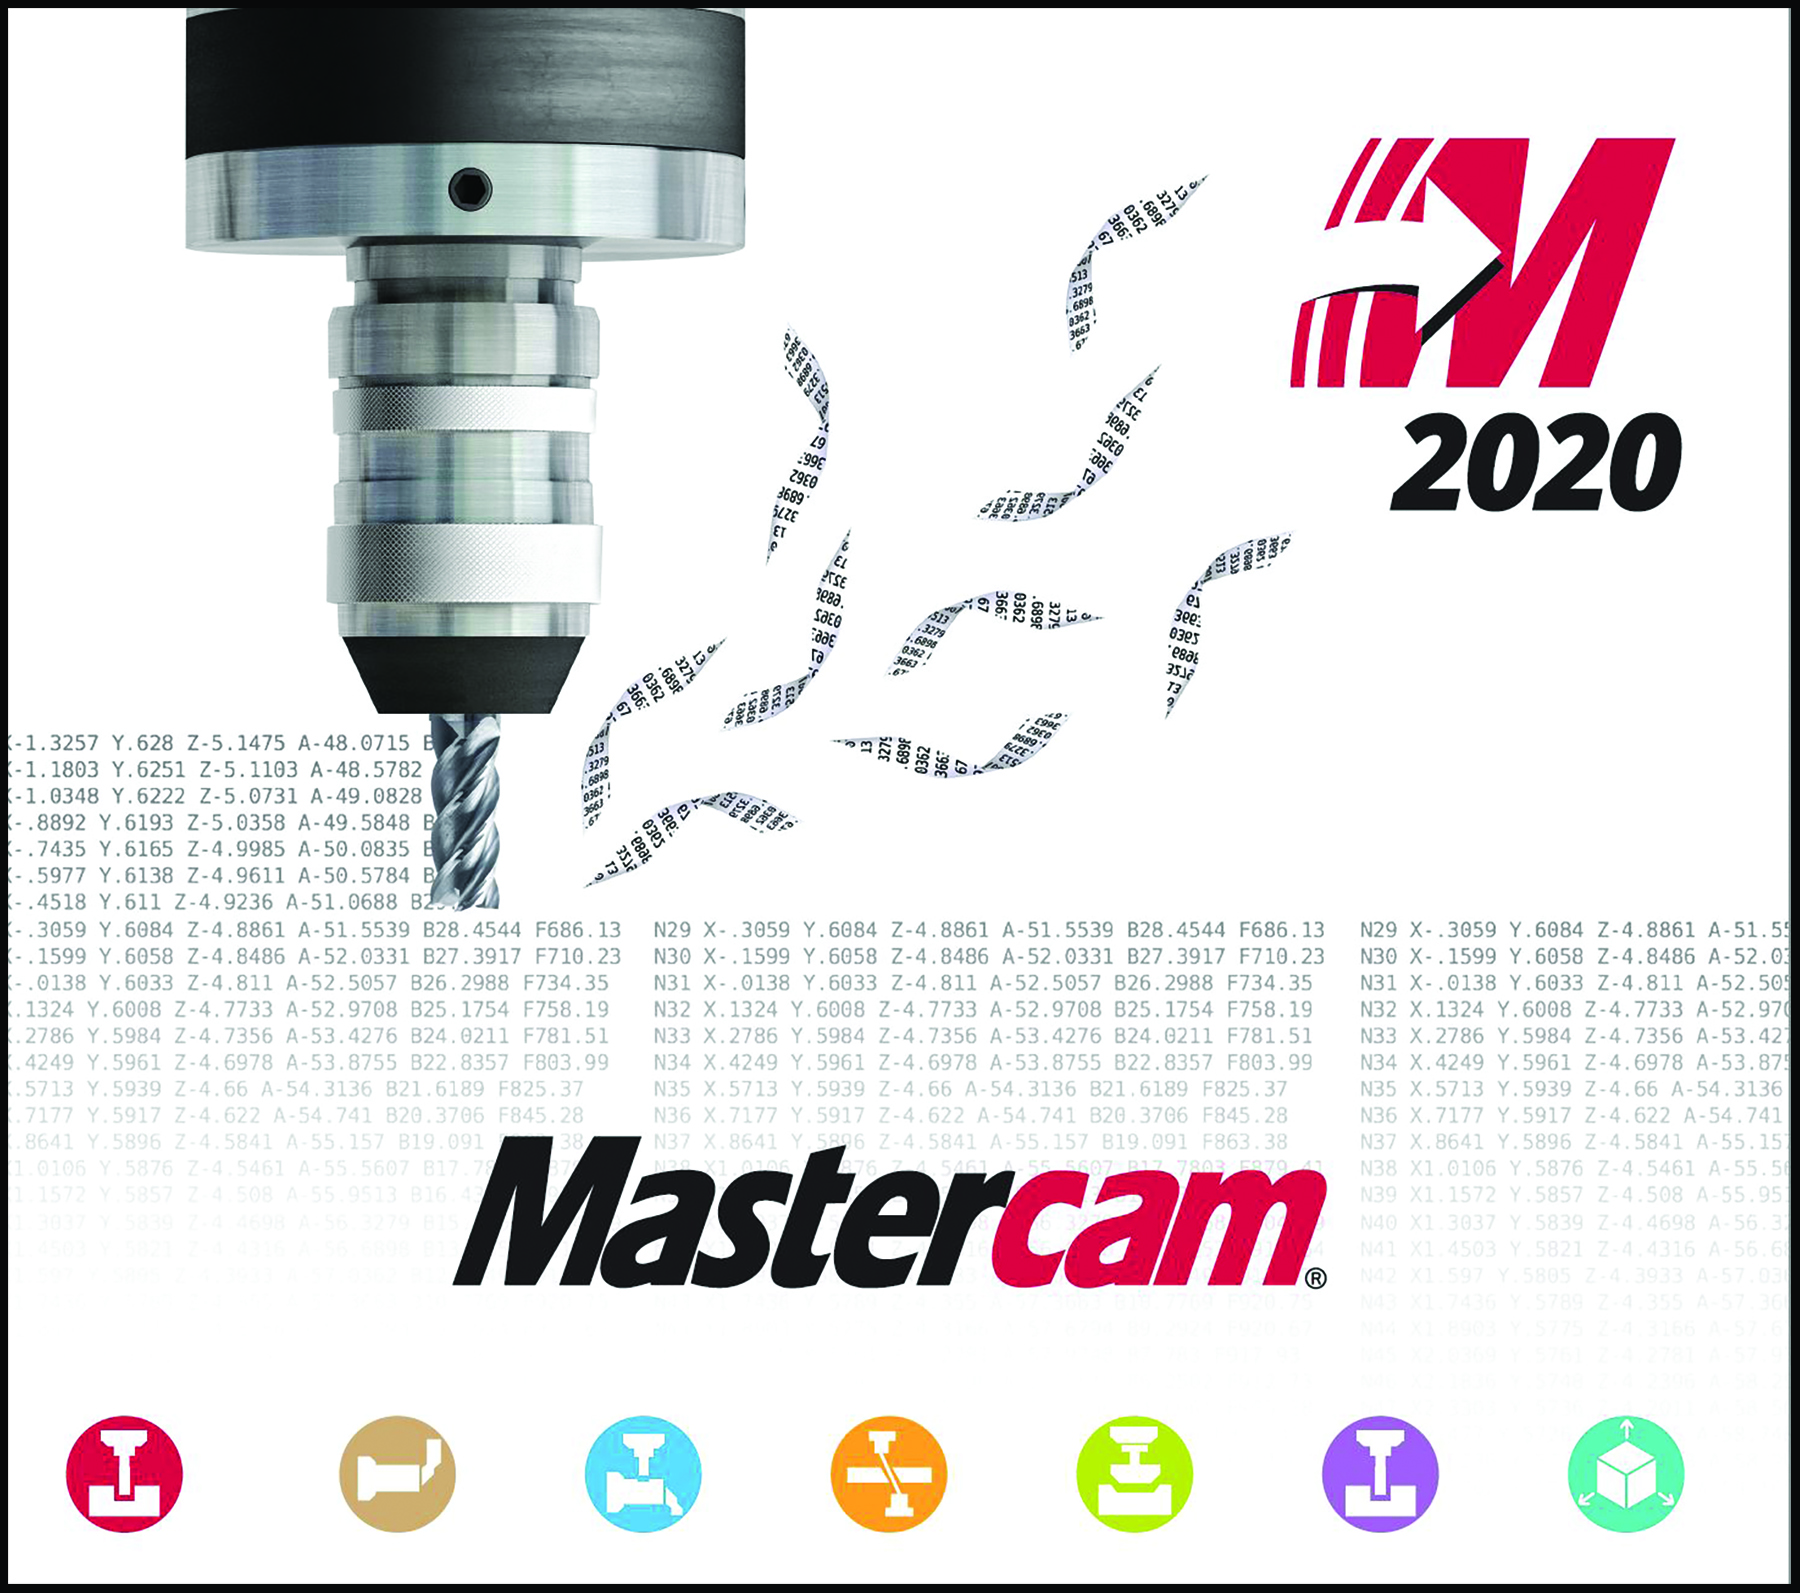 Mastercam 2020 Crack + License key Free Download { Latest }